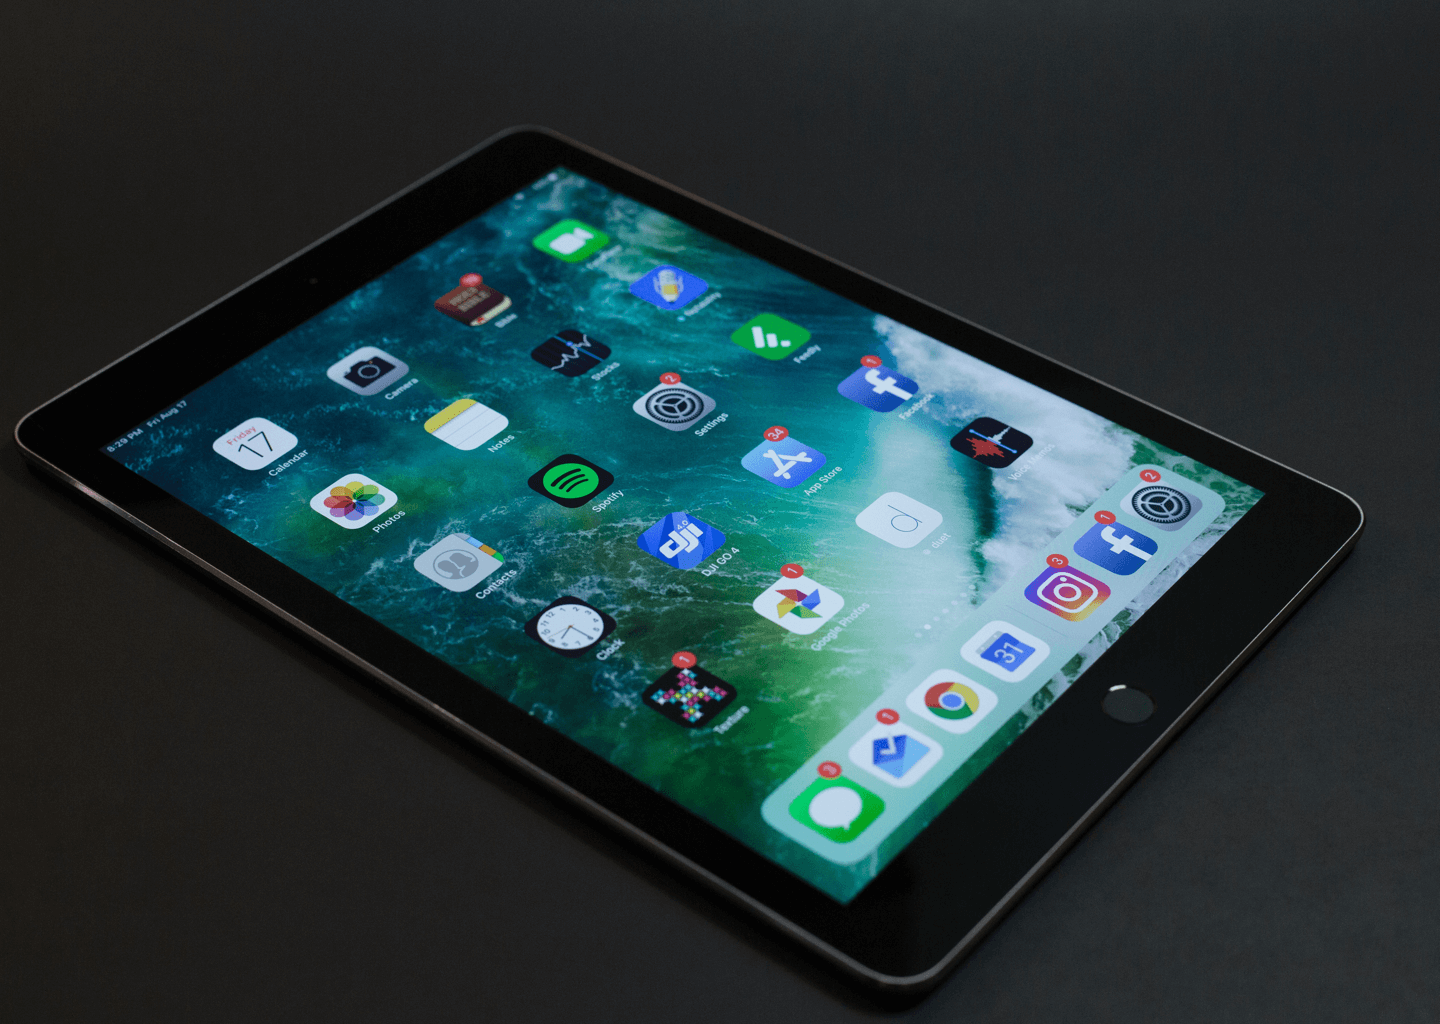 How Much Amount Do You Have To Spend For IPad Repair?